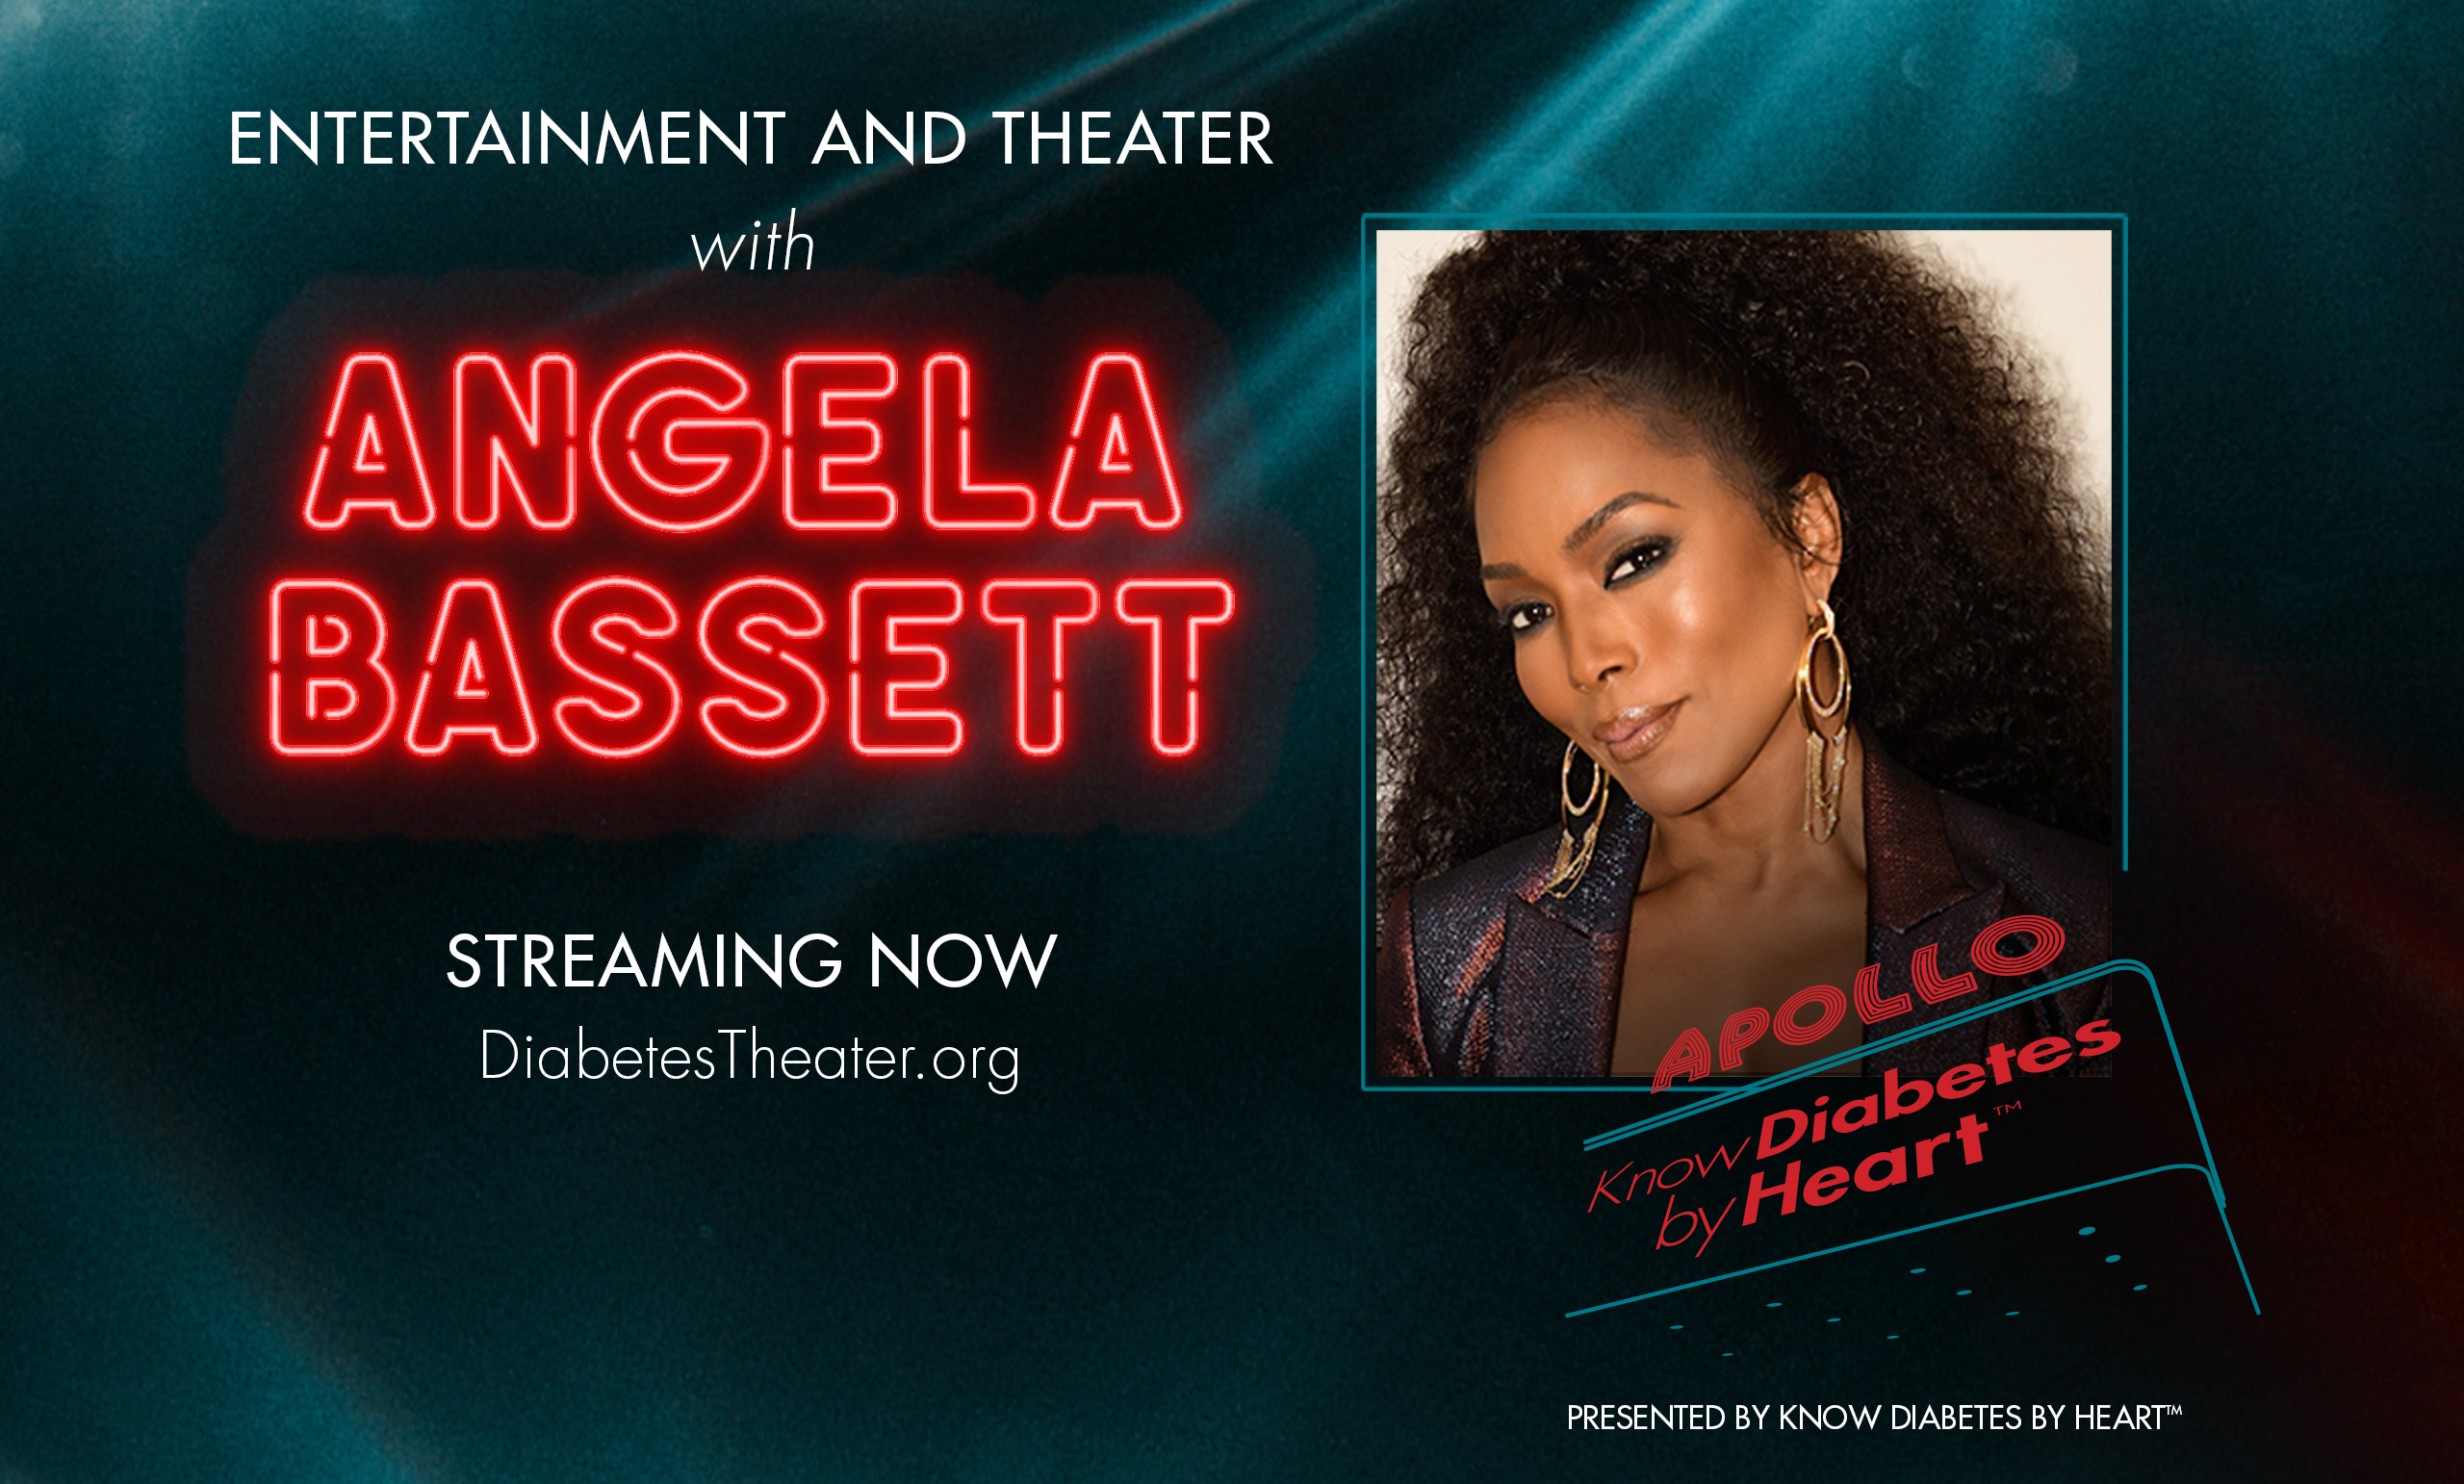 Diabetes Theater Angela Bassett Presented by Know Diabetes by Heart